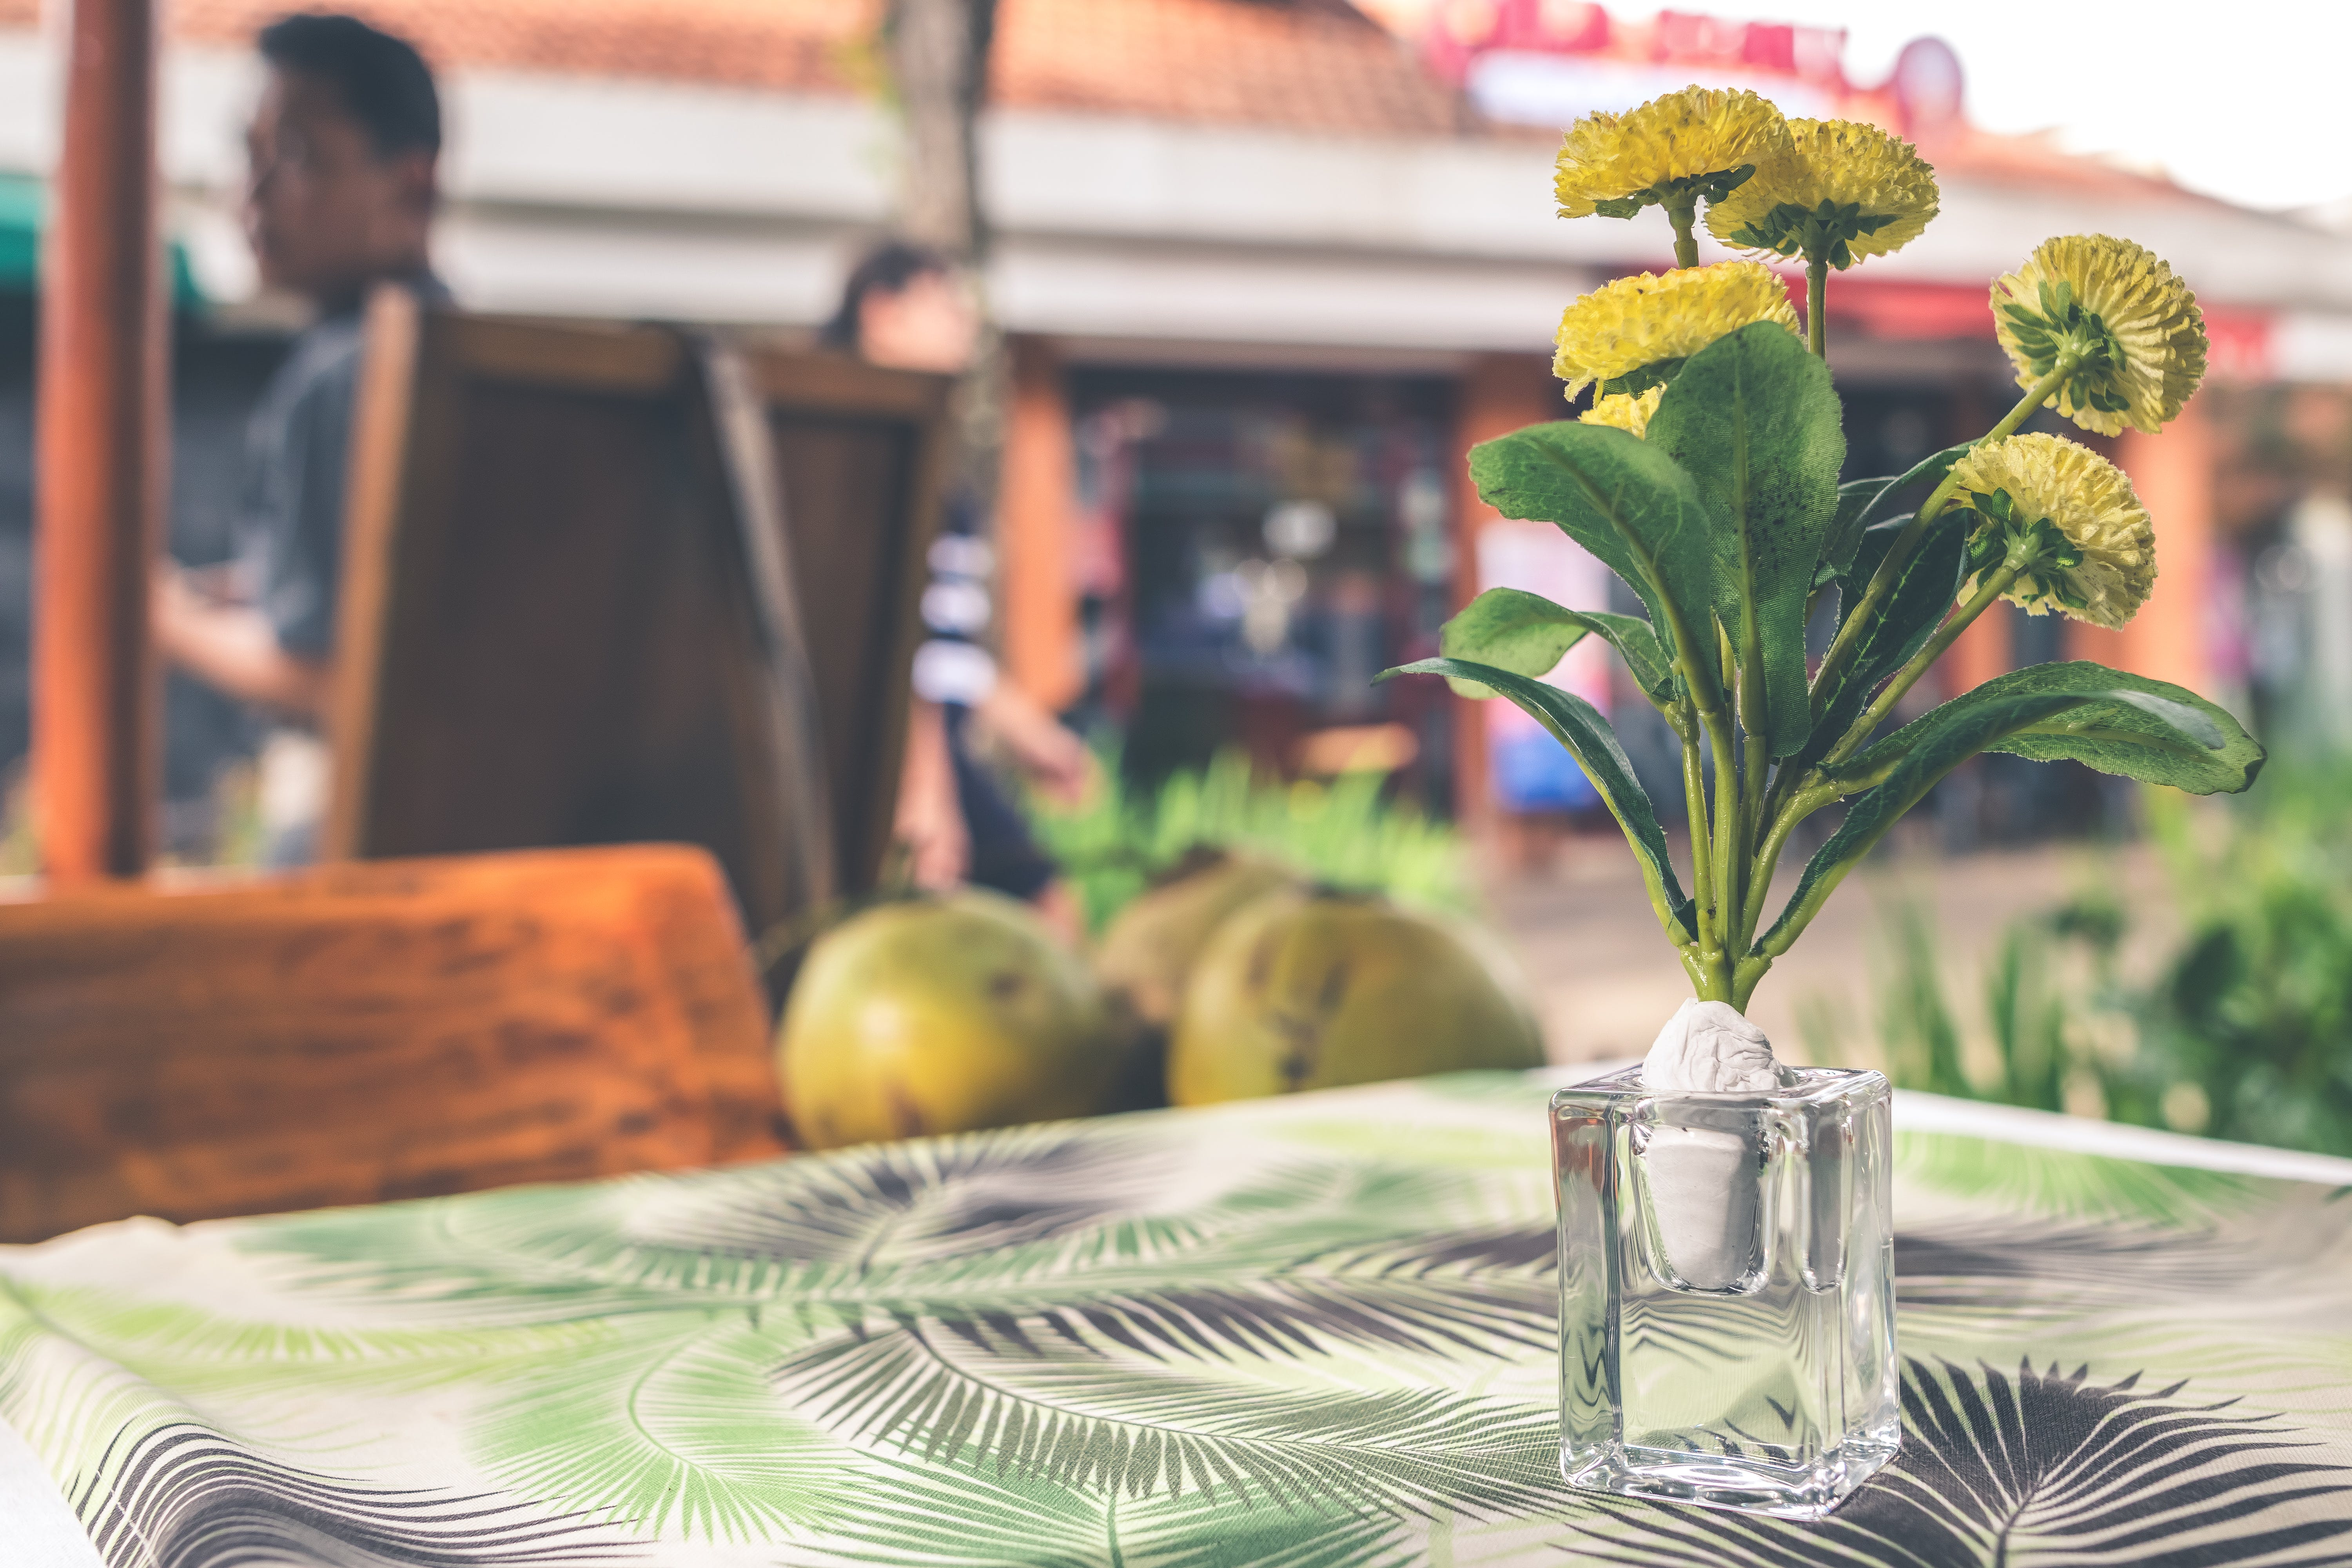 Yellow Flower Arrangement in Vase on Top of Table